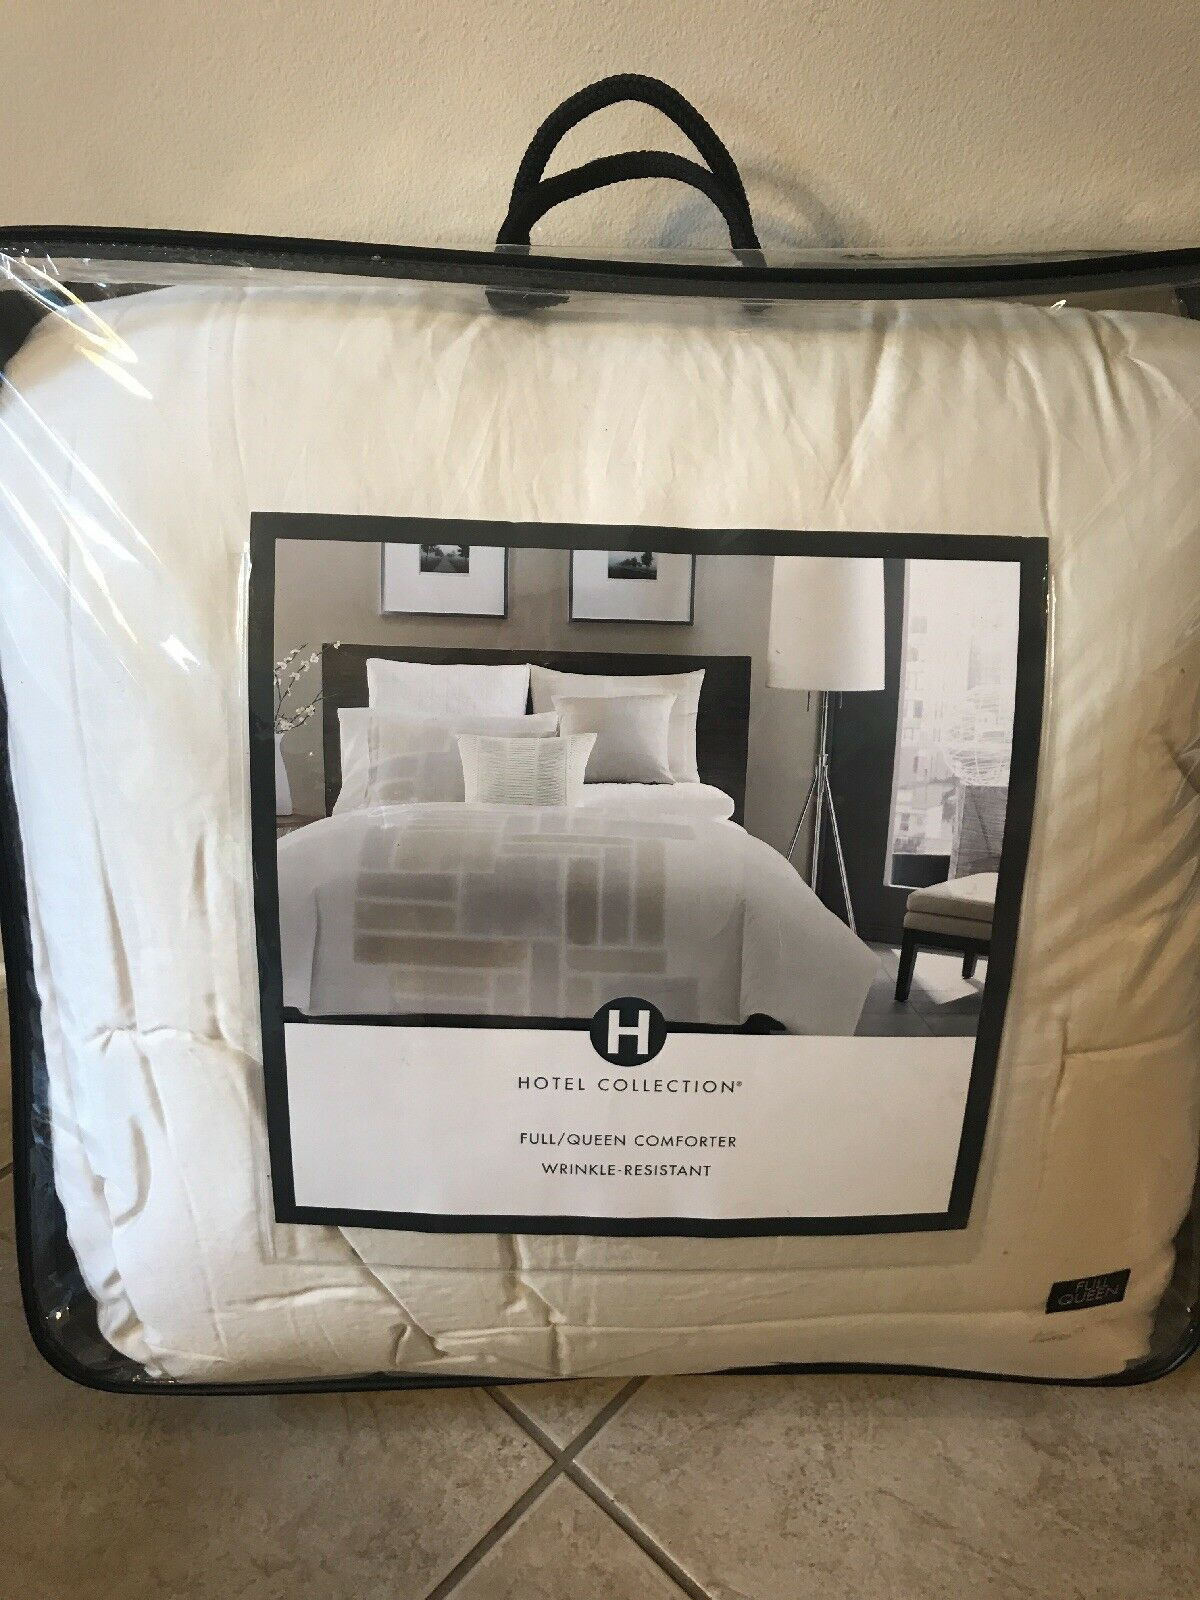 Hotel Collection BRUSH STROKES   FULL   QUEEN Comforter Medium Weight